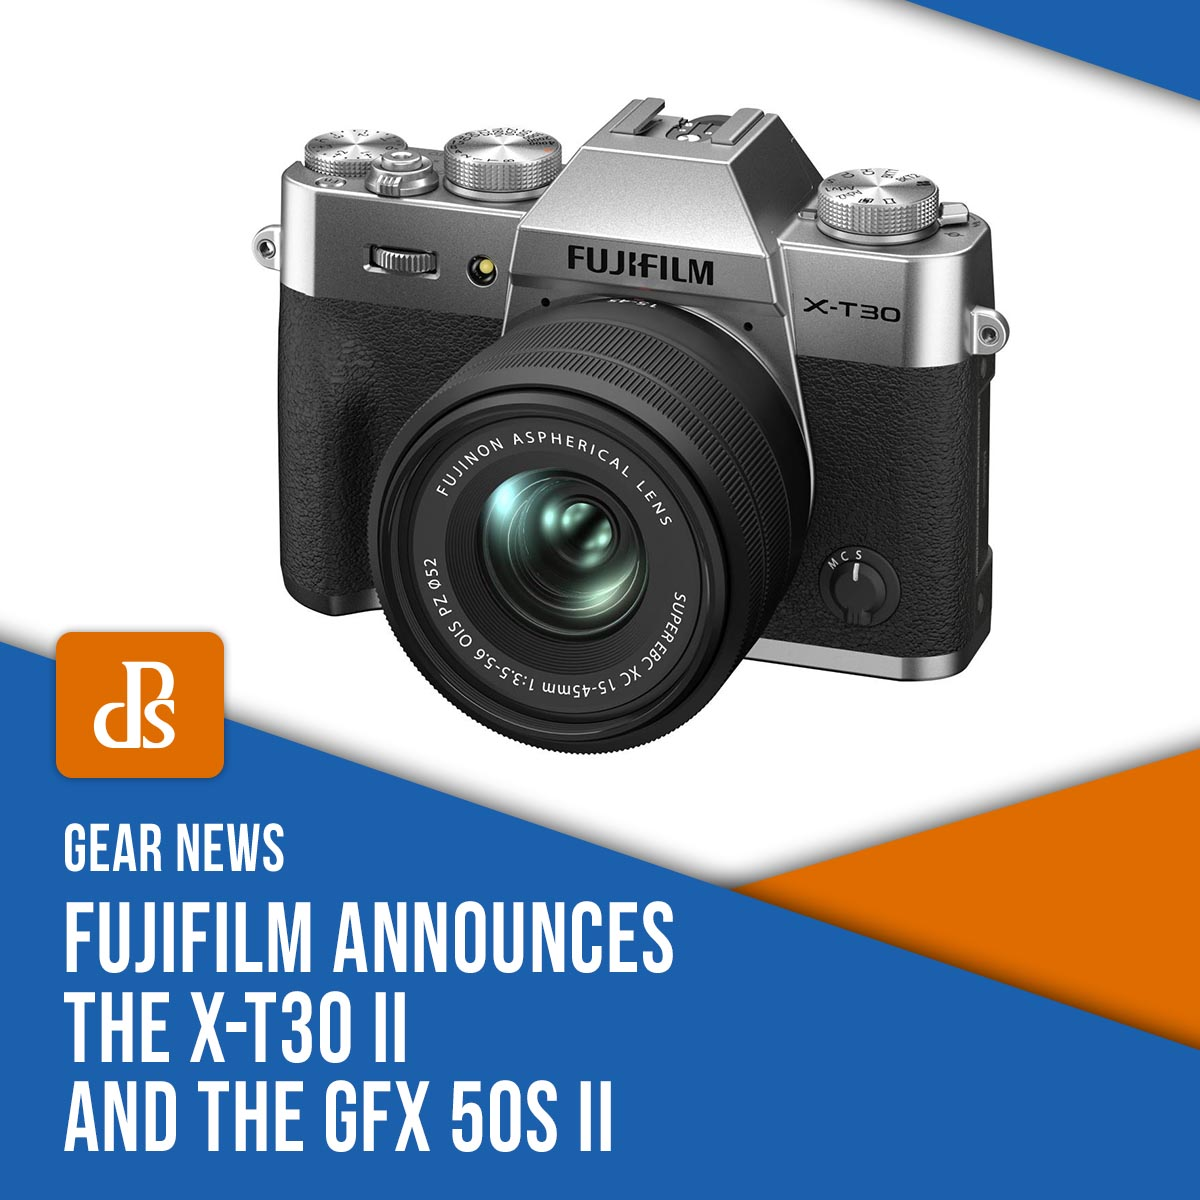 Fujifilm Announces the Affordable X-T30 II and the Medium Format GFX 50S II